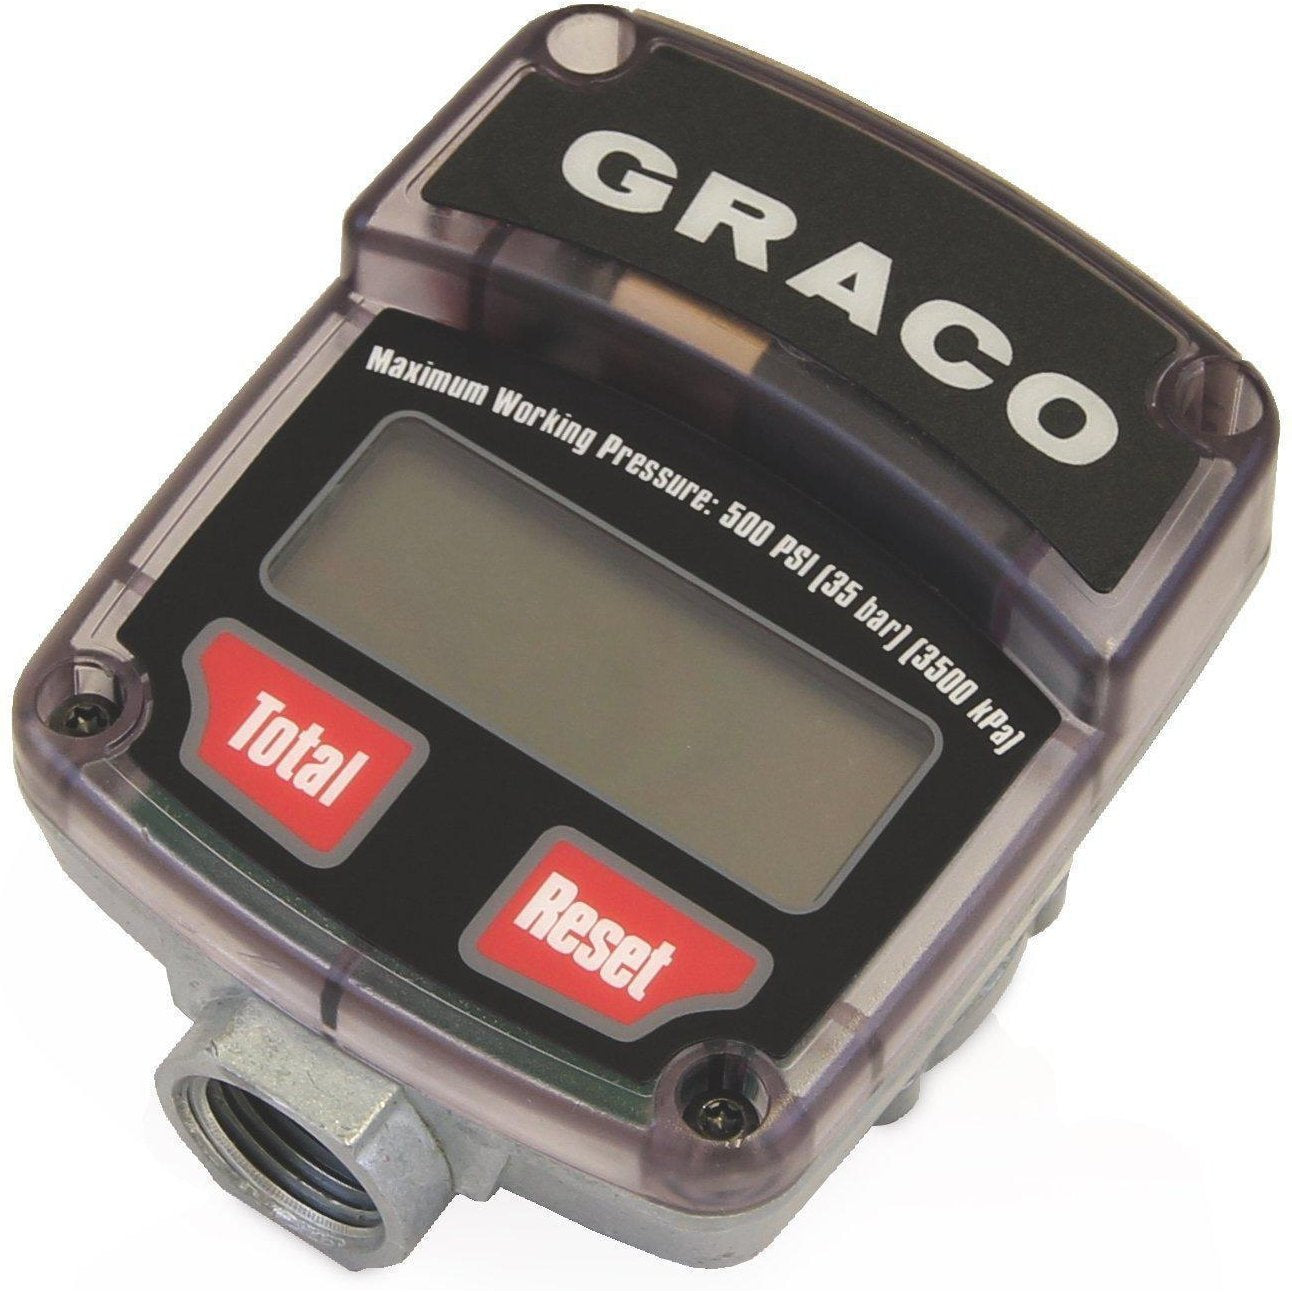 Graco 239824 Im5 Low-Pressure, Low-Flow In-Line Meter - Fireball Equipment Ltd.